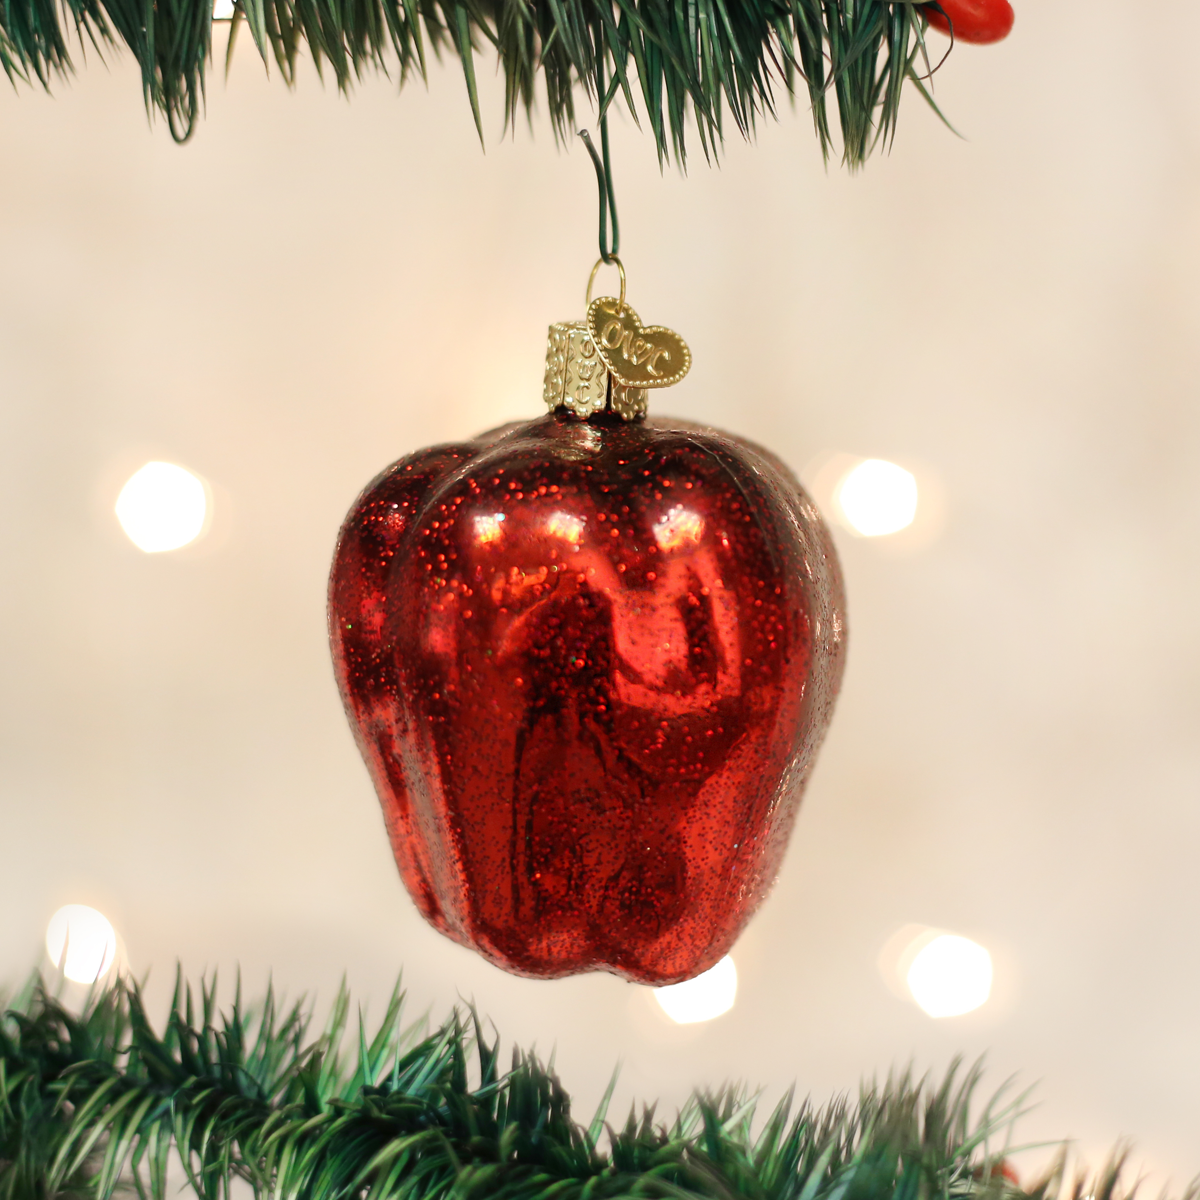 Is A Christmas Tree A Religious Symbol: Red Delicious Apple Ornament